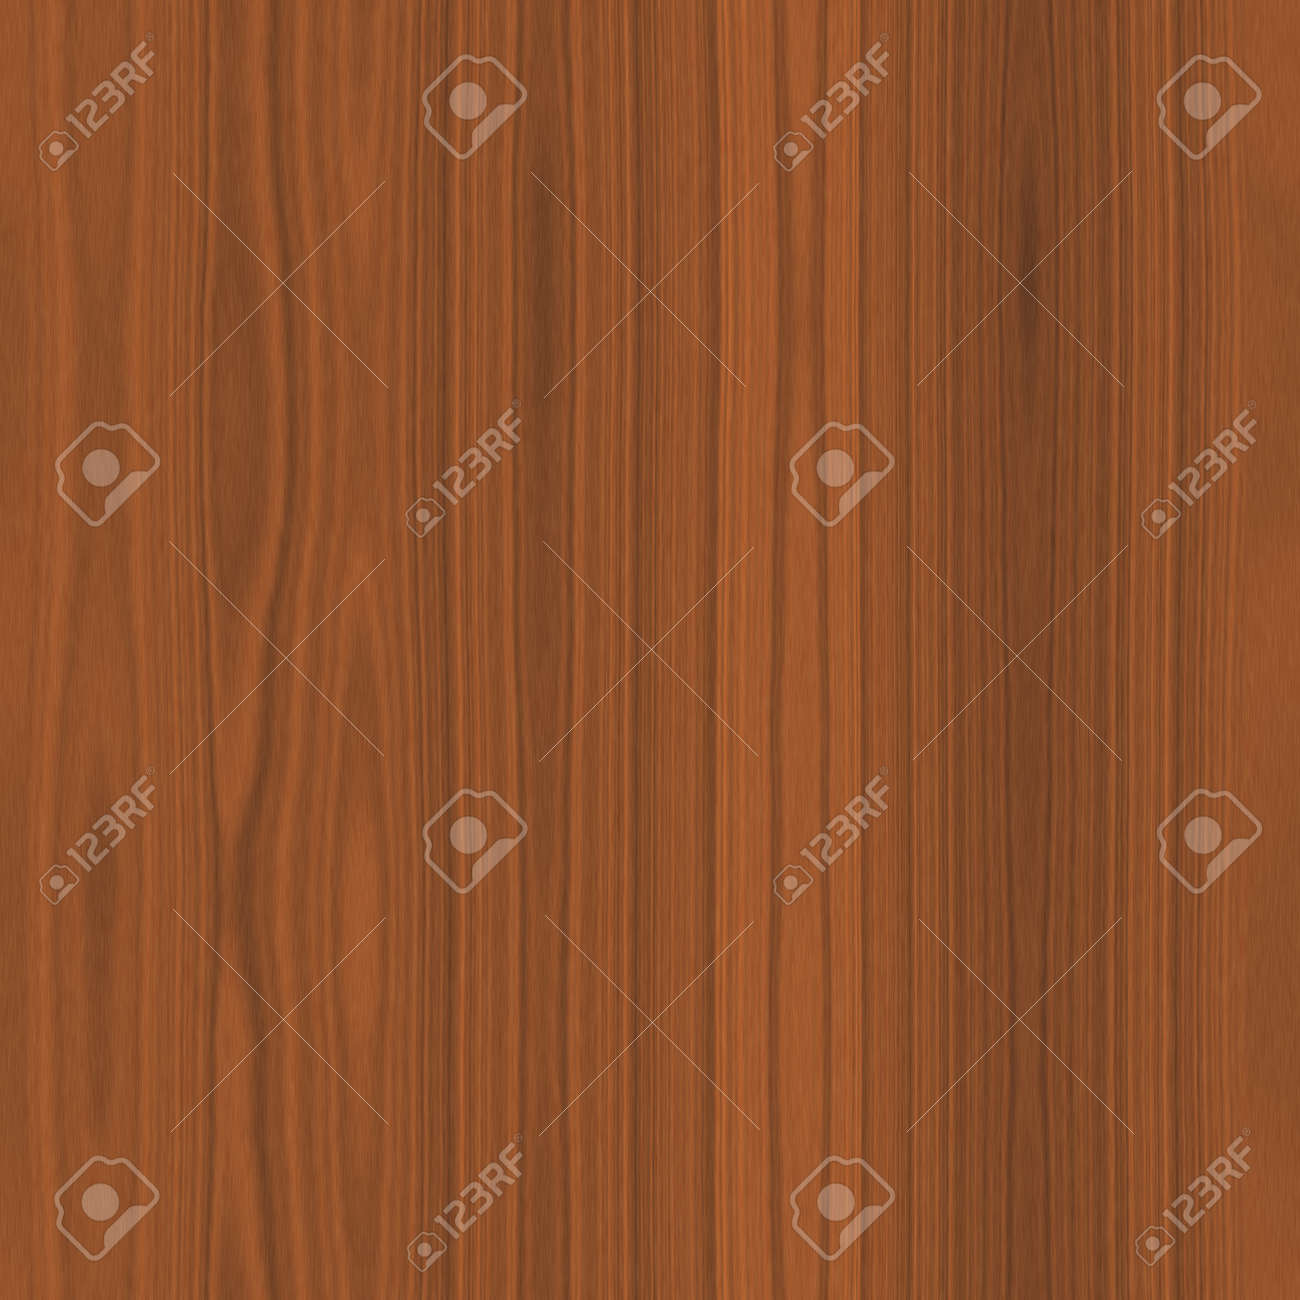 Seamless Wood Texture Background Illustration Closeup Dark